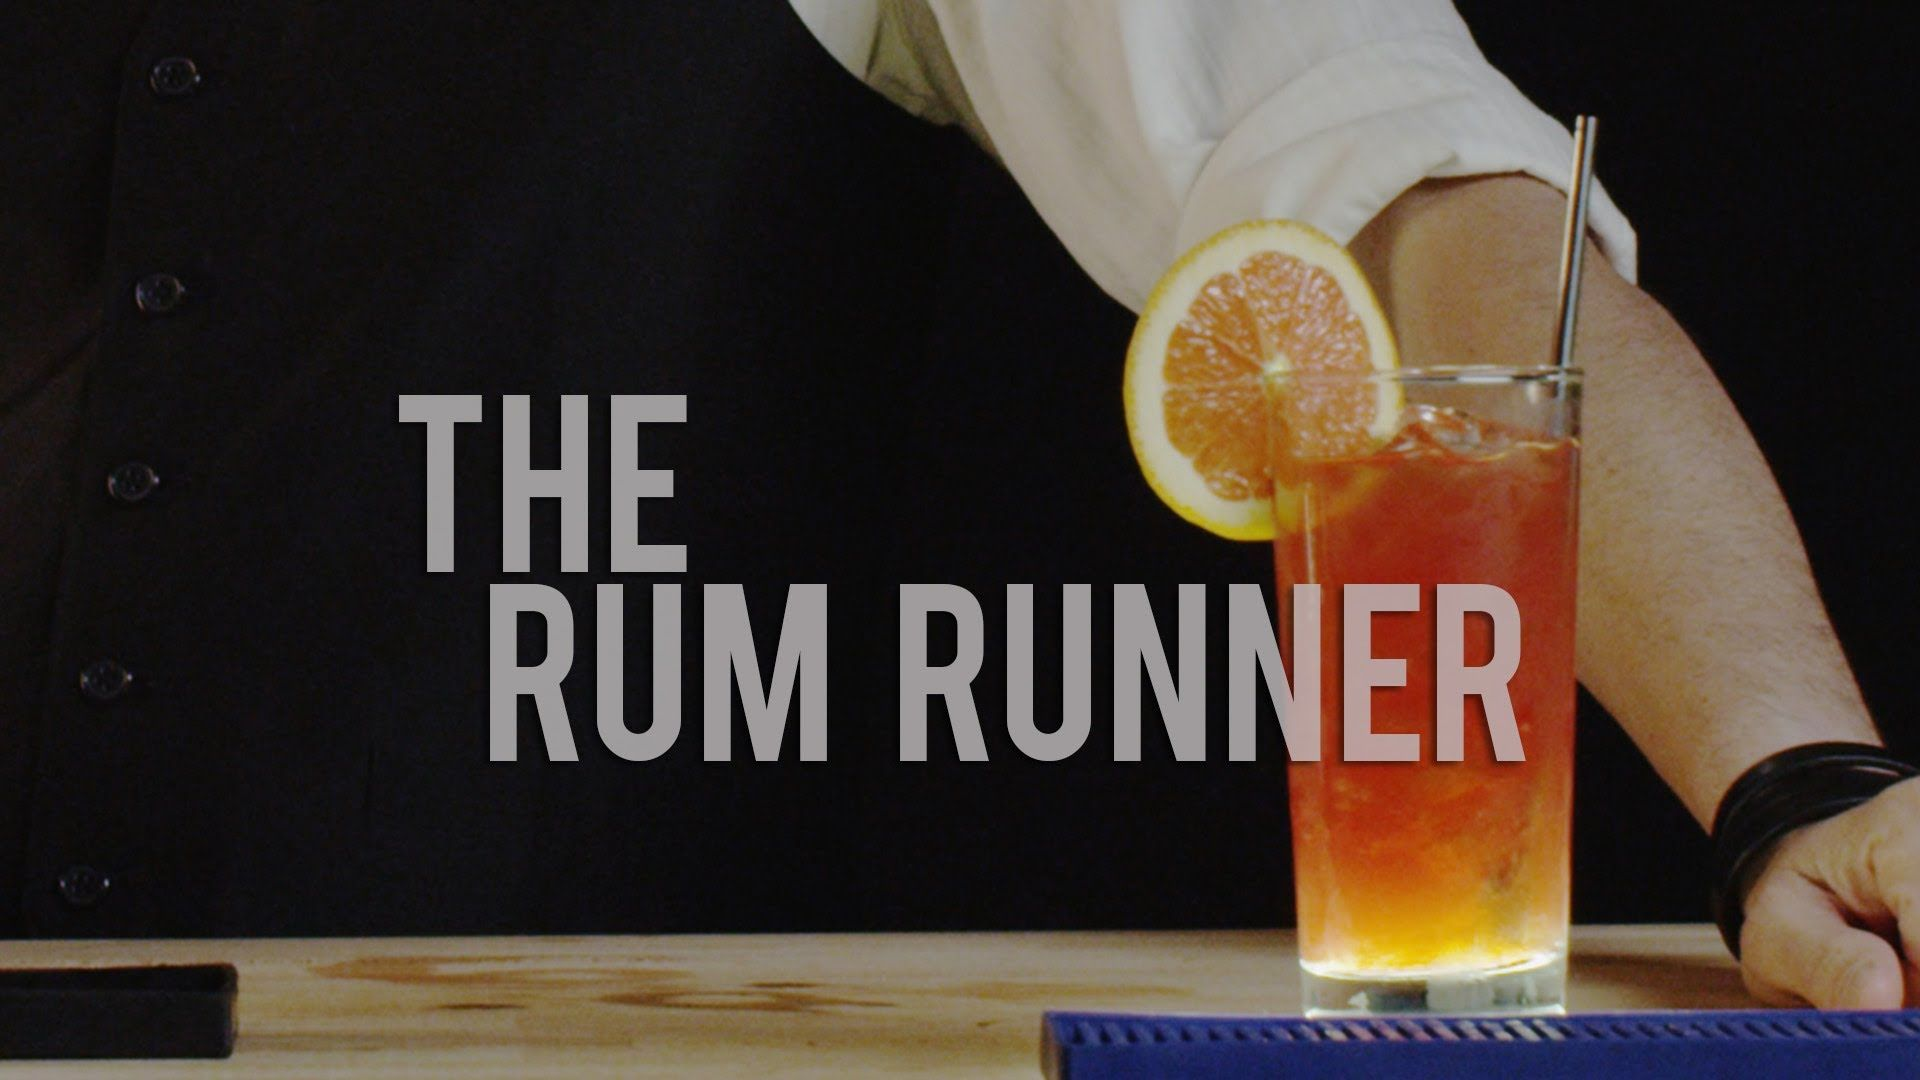 How To Make The Rum Runner Best Drink Recipes With